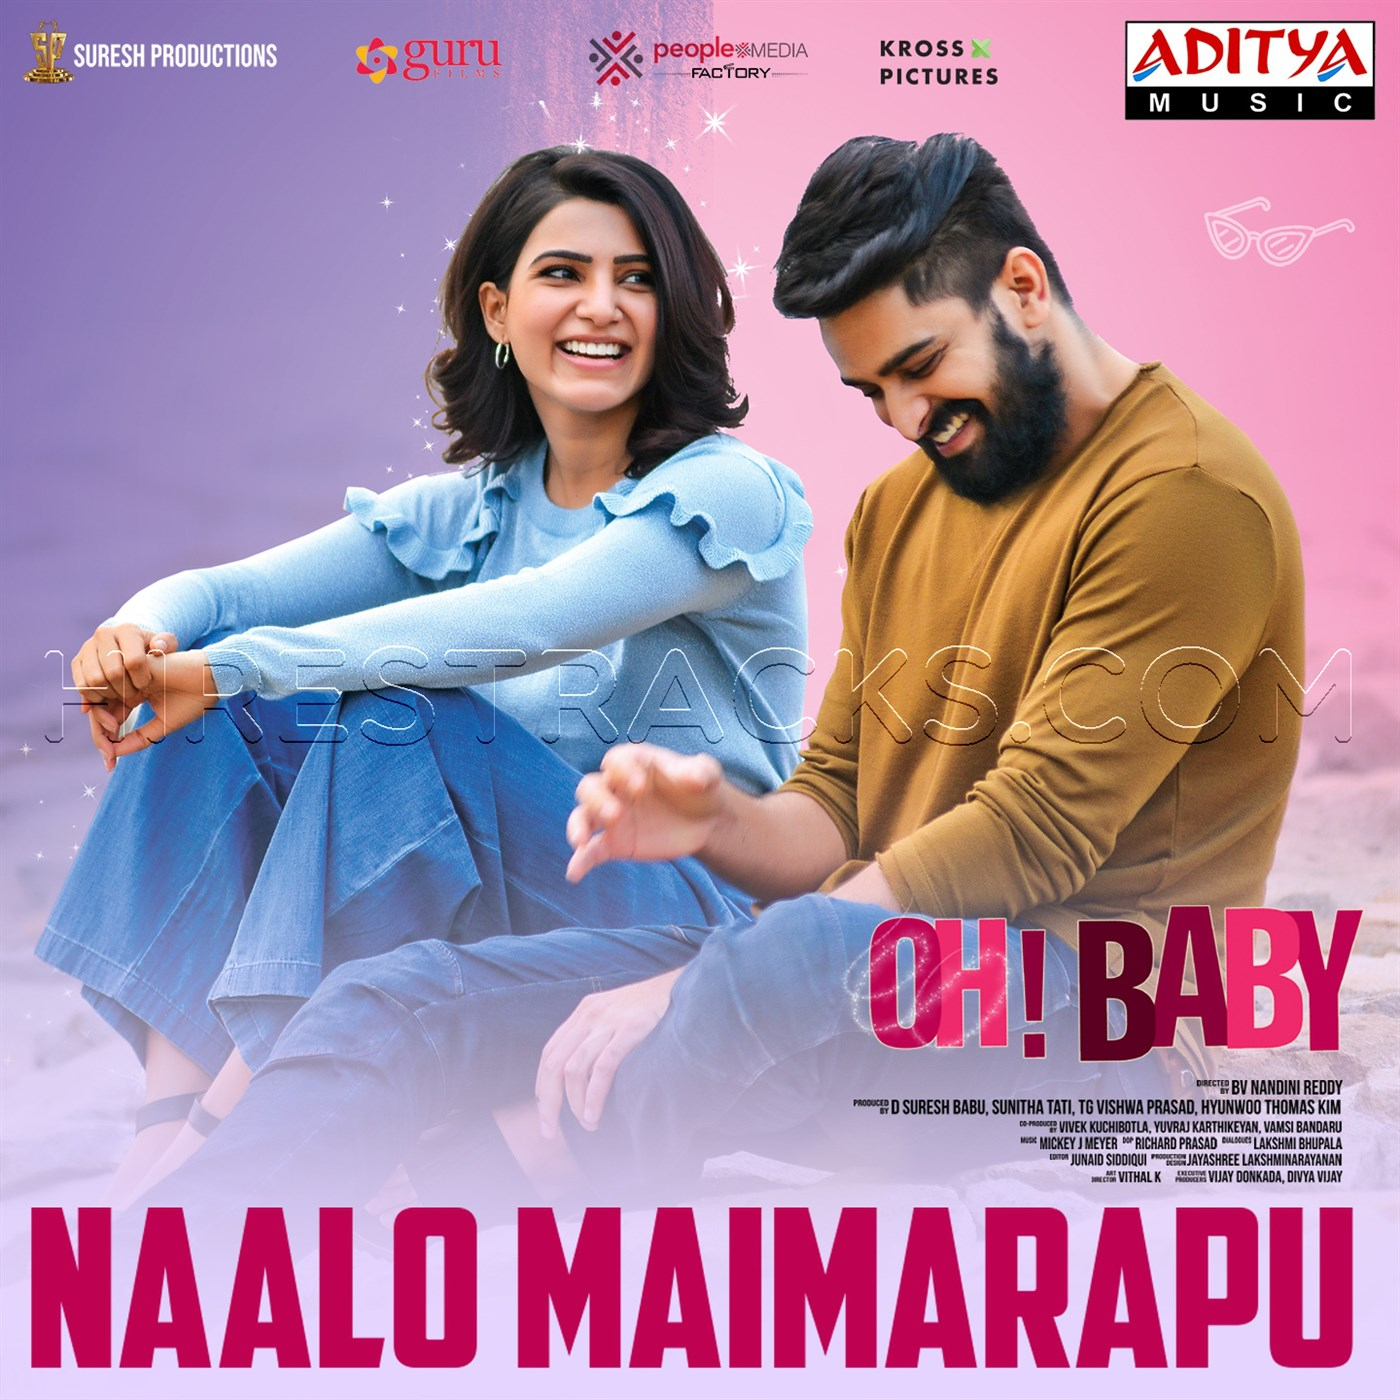 Naalo Maimarapu (From Oh Baby) – Single (2019)